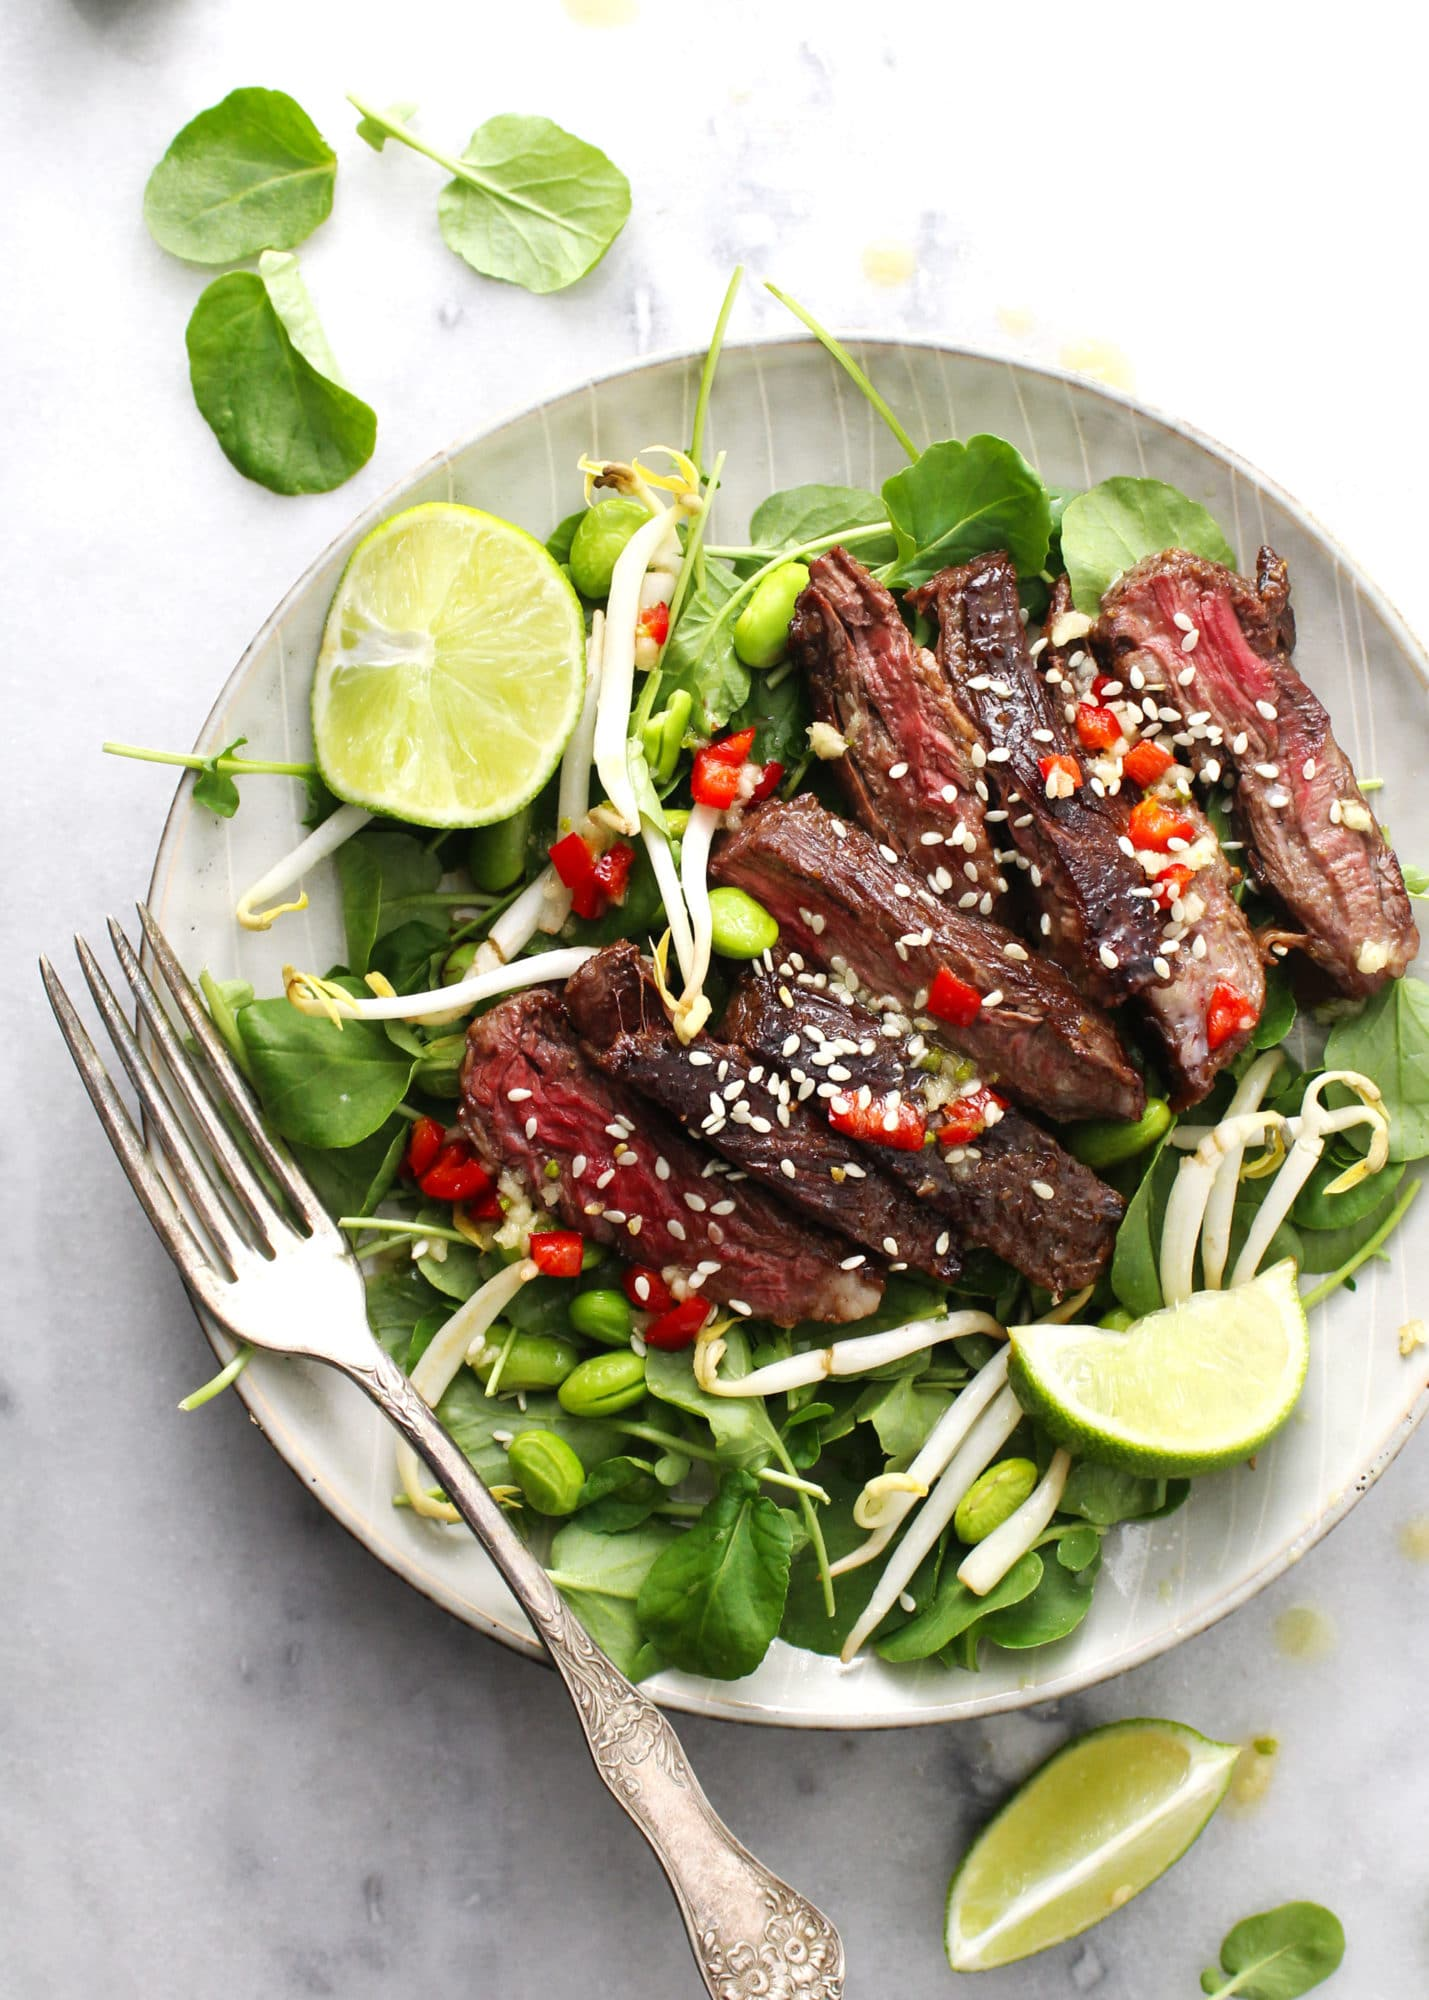 korean bbq steak salad with lime wedges on gray plate